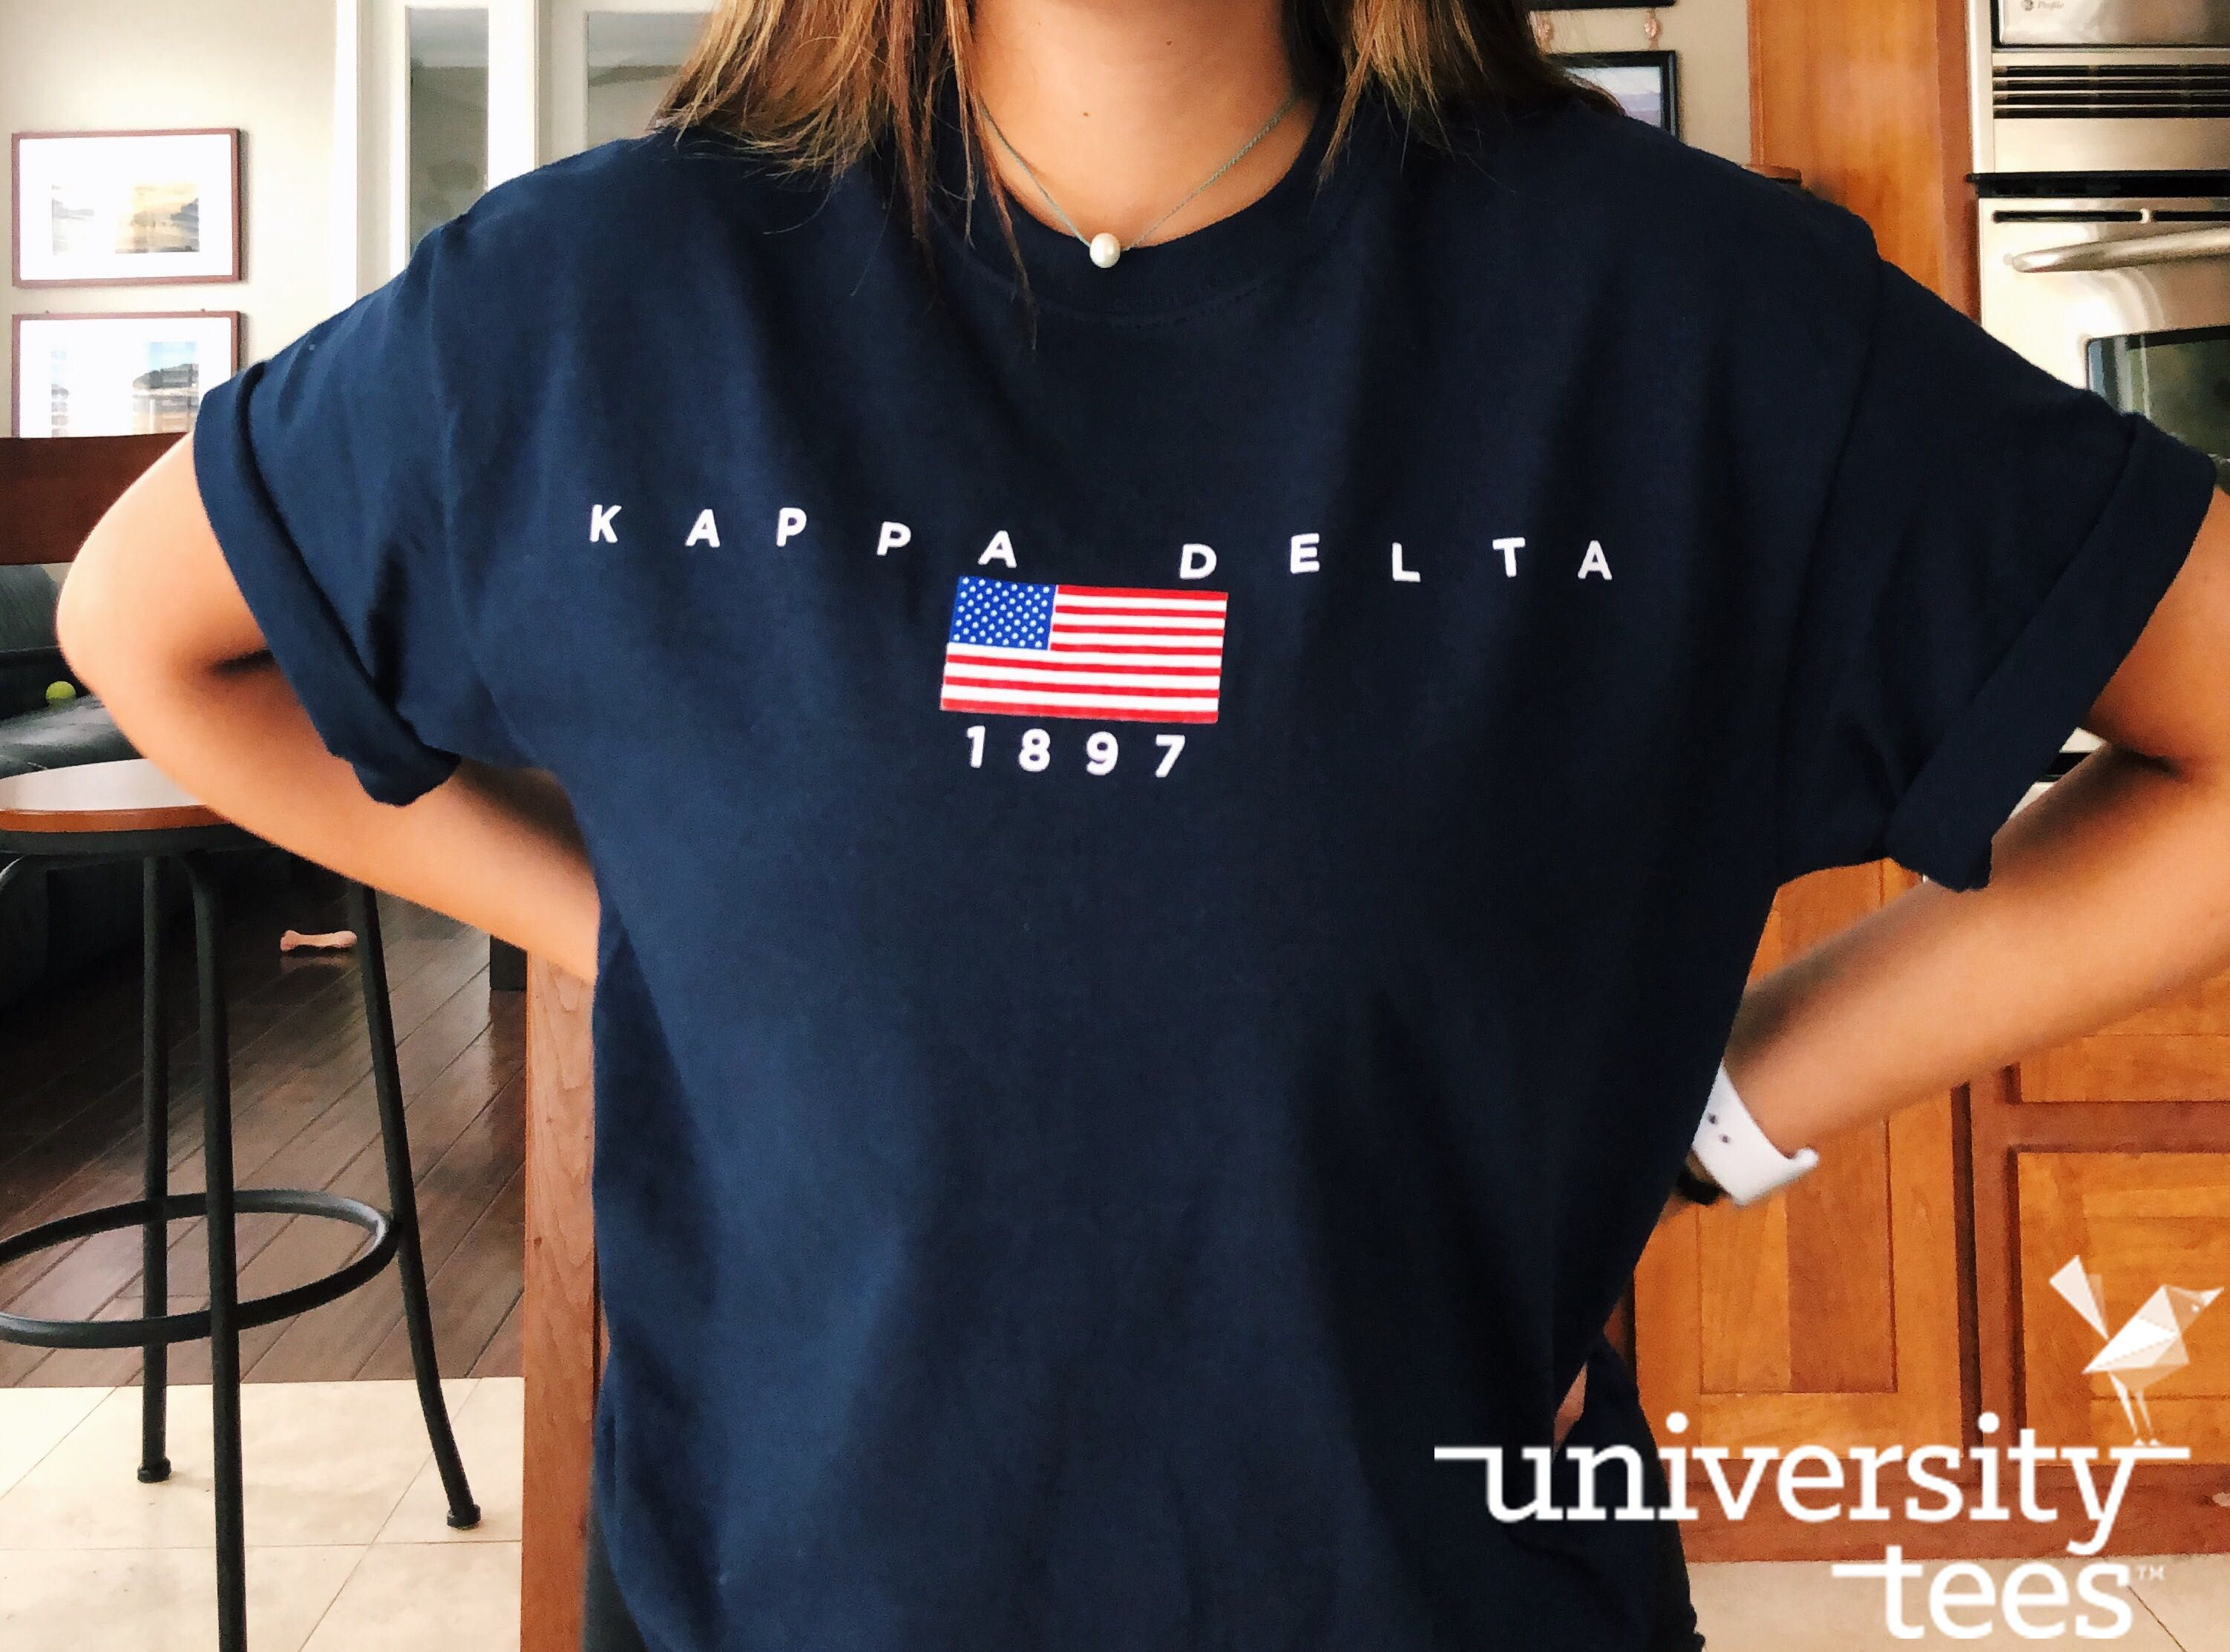 University Tees Sorority Shirts Greek Tshirts Greek Apparel Greek Life Utees Sorority T Shirt Screen Printing Shirts Sorority Shirts Greek Clothing Gambling is a lot of fun, but it can lead to severe problems when left unchecked. university tees sorority shirts